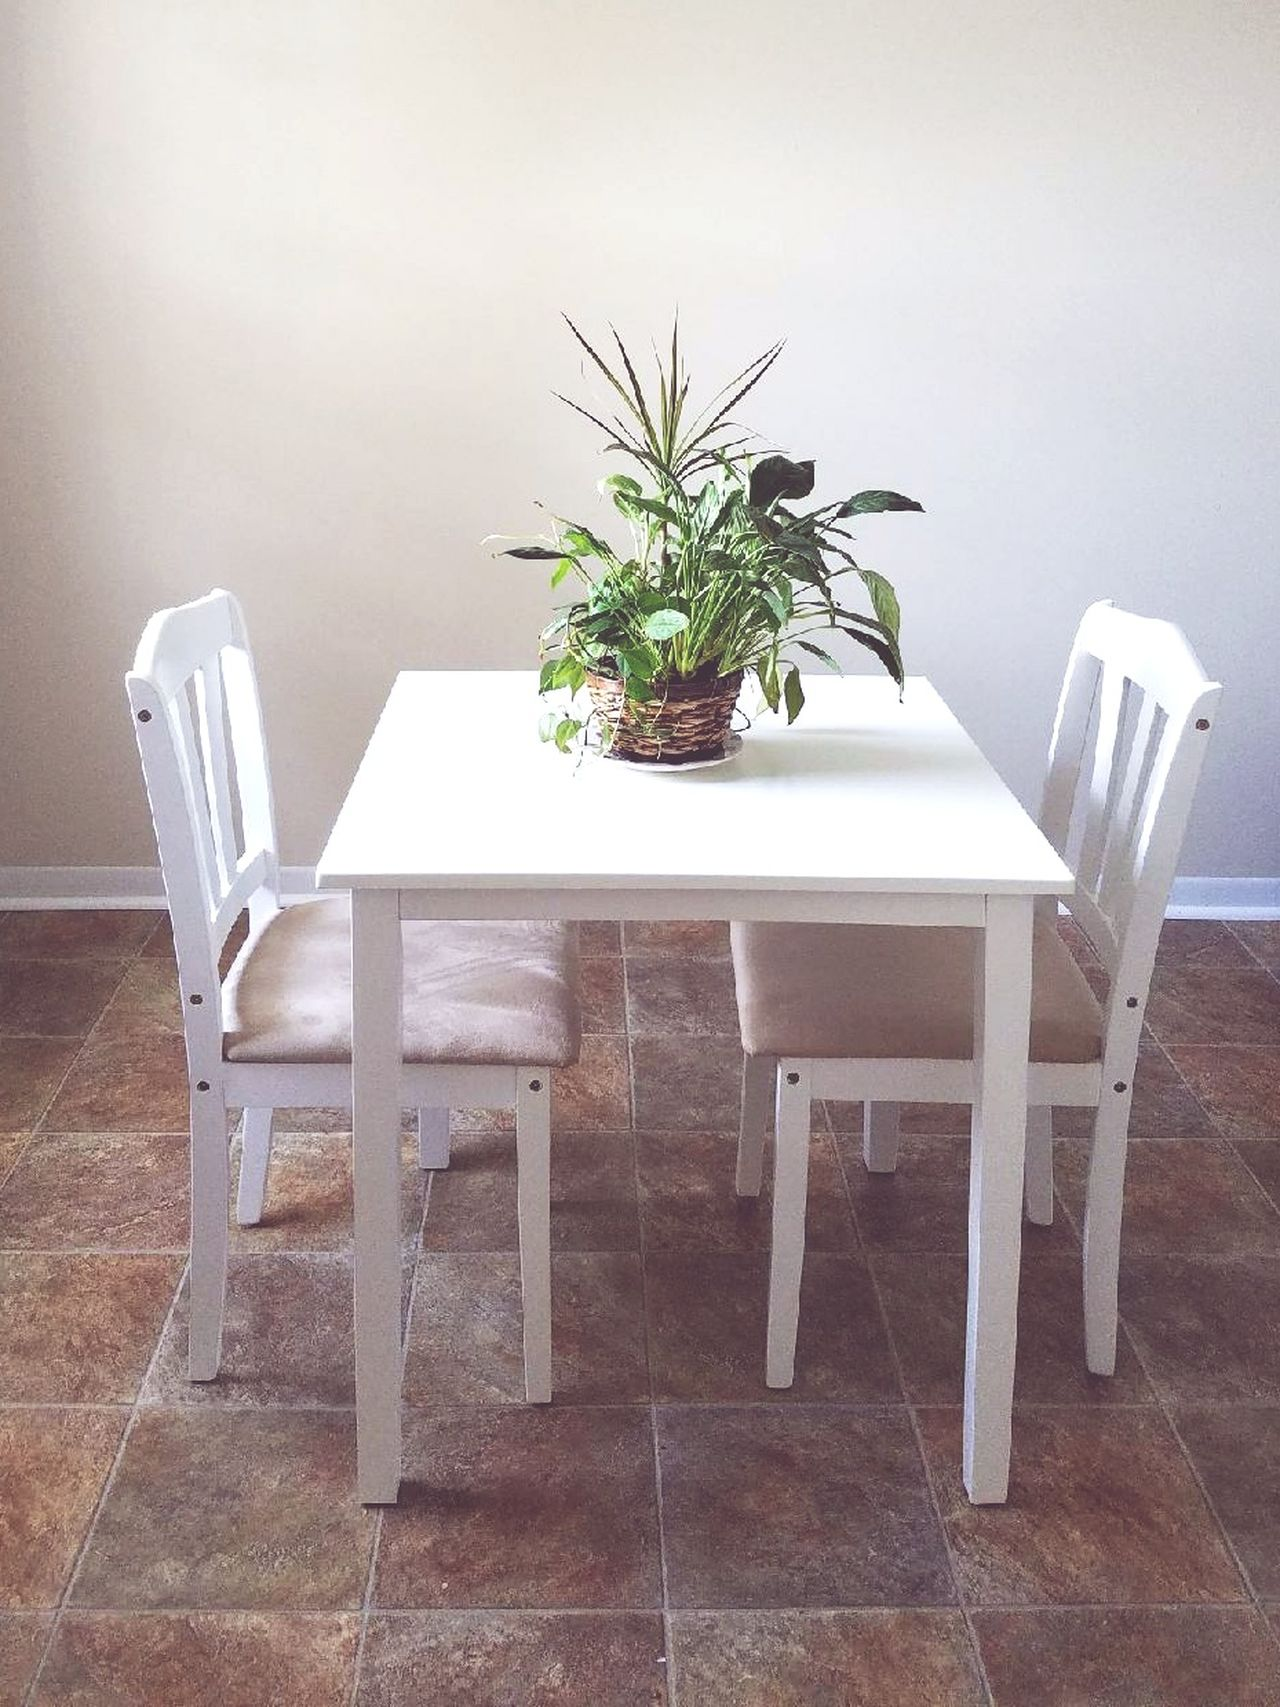 Chair Table Indoors  Home Interior Potted Plant No People Home Showcase Interior Furniture Living Room Place Setting Day Dining Room Table Dining Room Bright Interior Springtime